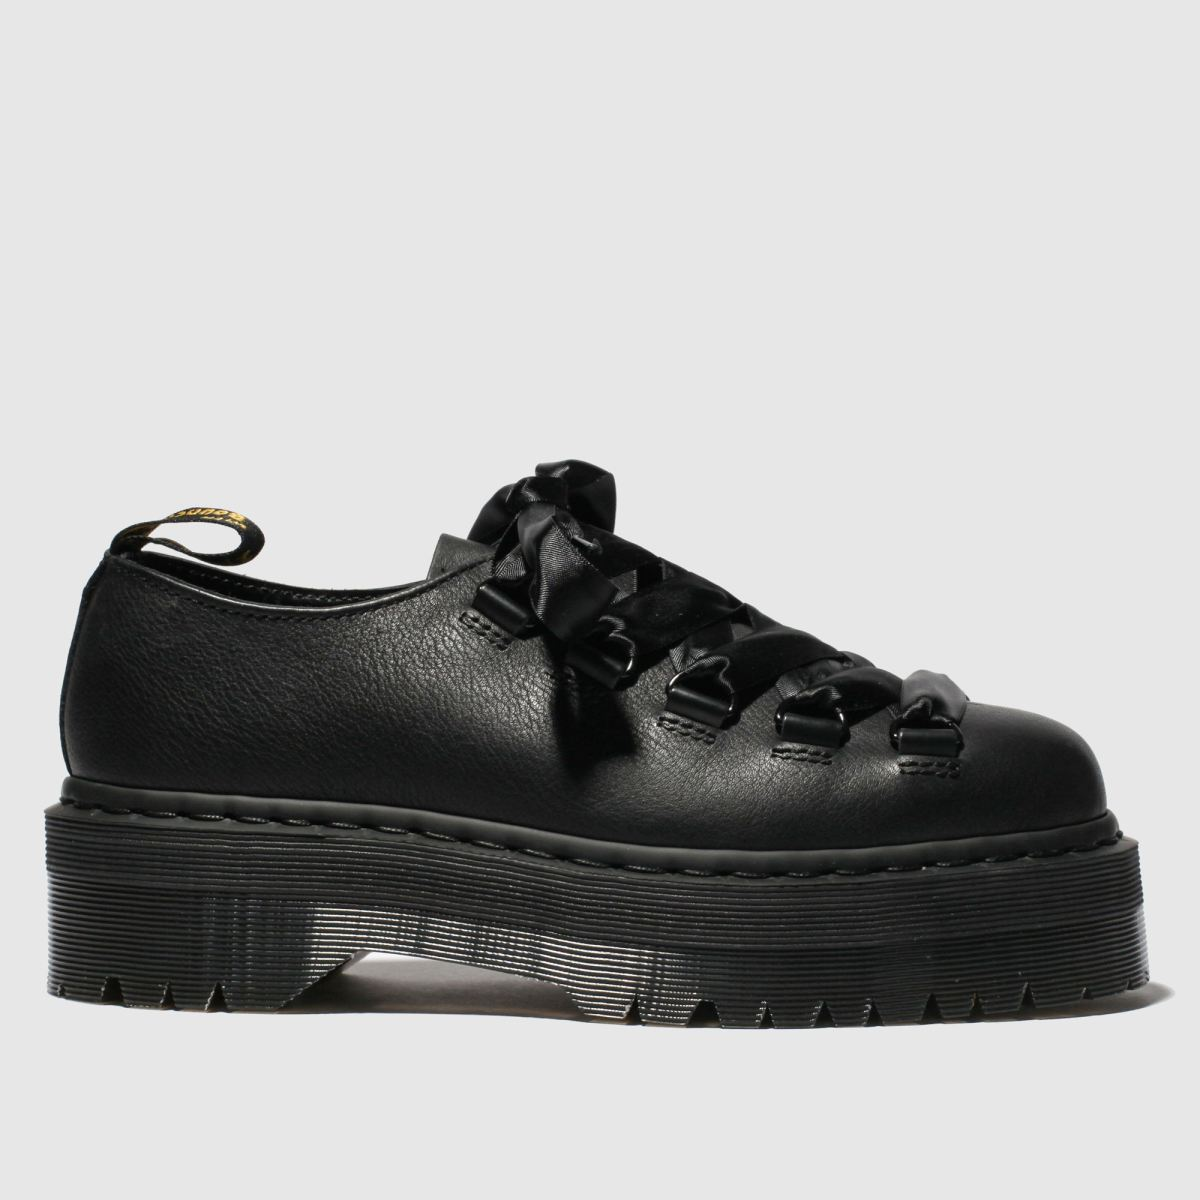 Dr Martens Black Caraya Shoe Flat Shoes